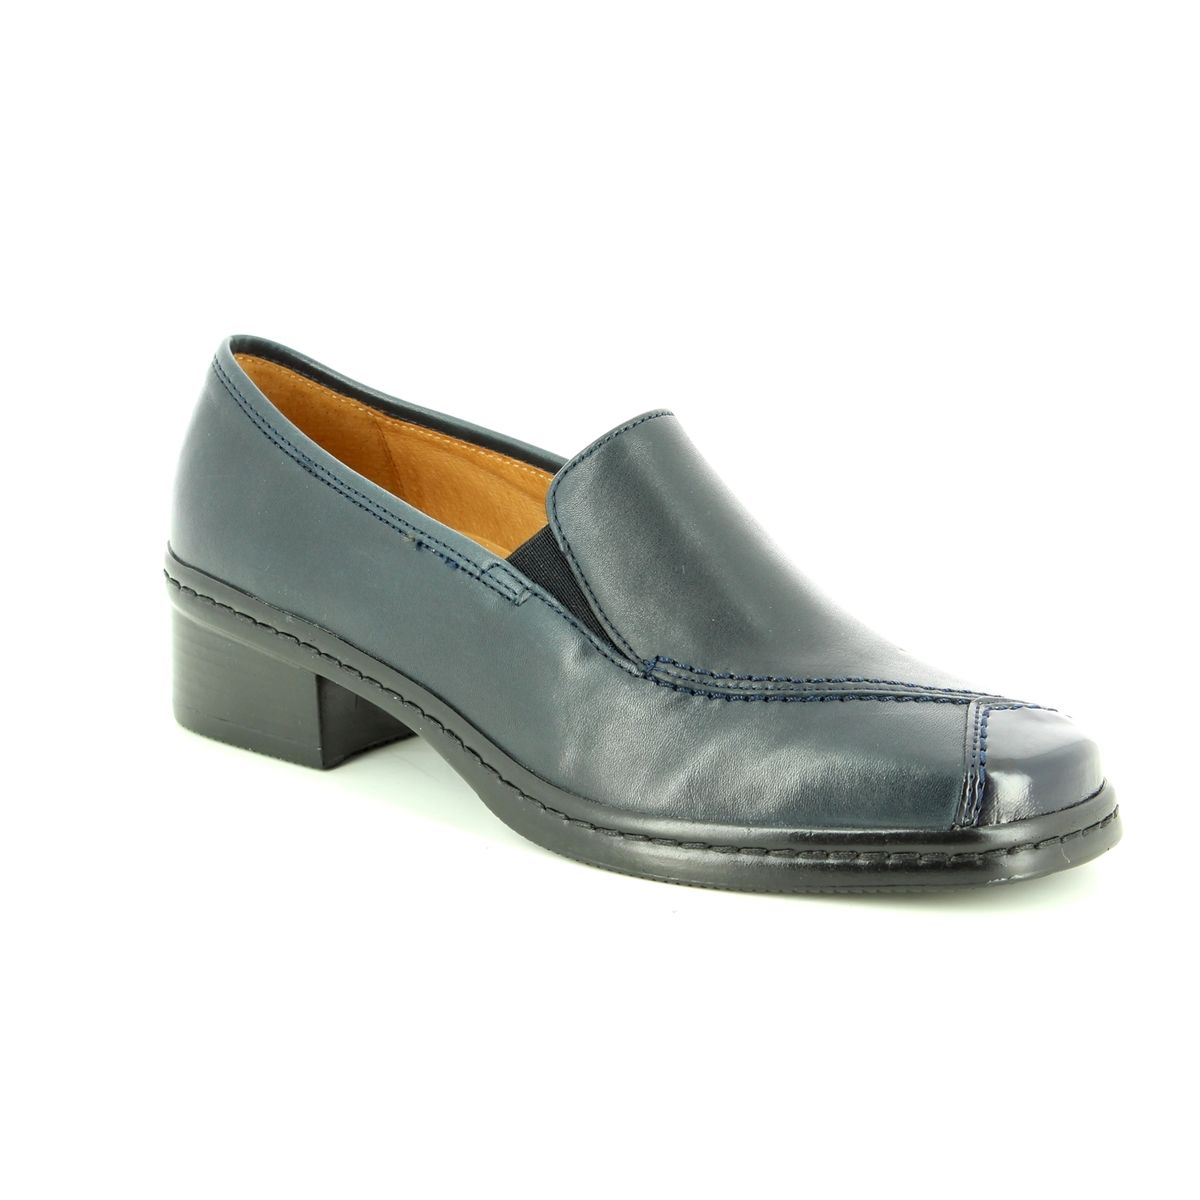 Gabor Comfort Shoes - Navy - 96.026.96 FRITH 5490de21dae